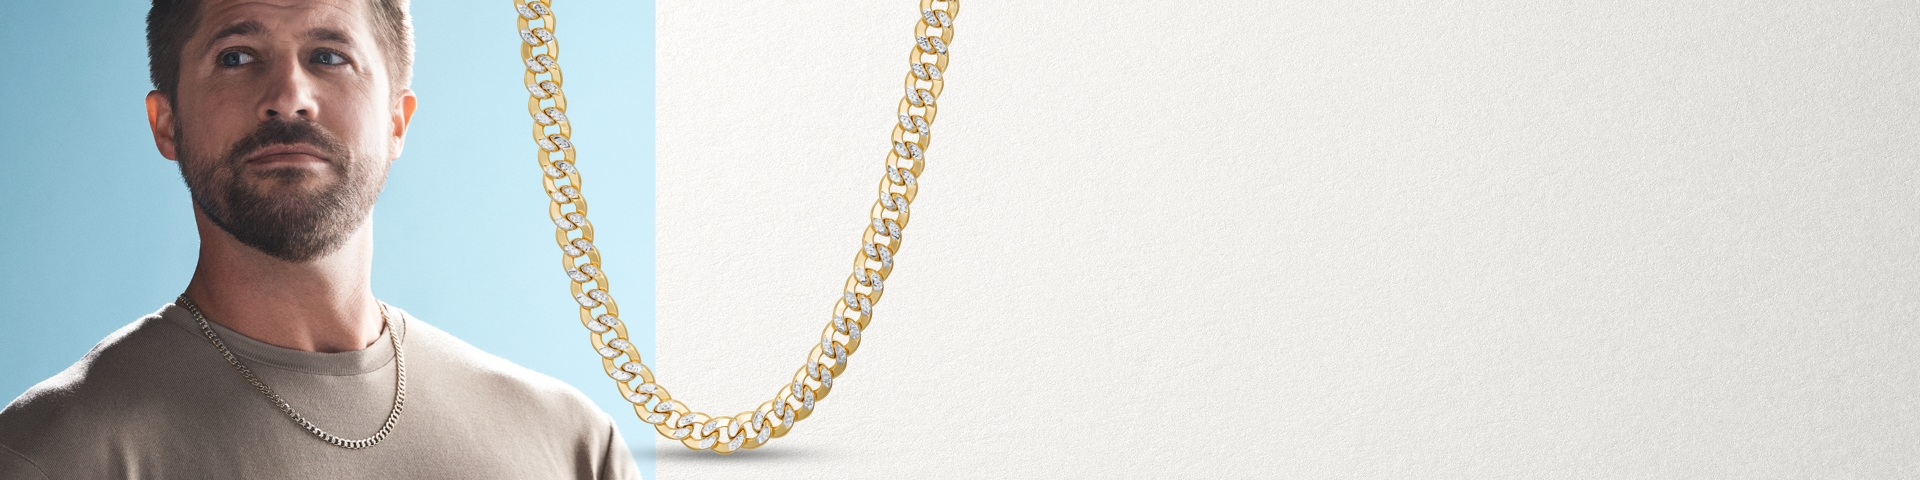 Image of a man wearing a yellow gold chain necklace next to a closer image of the necklace details.